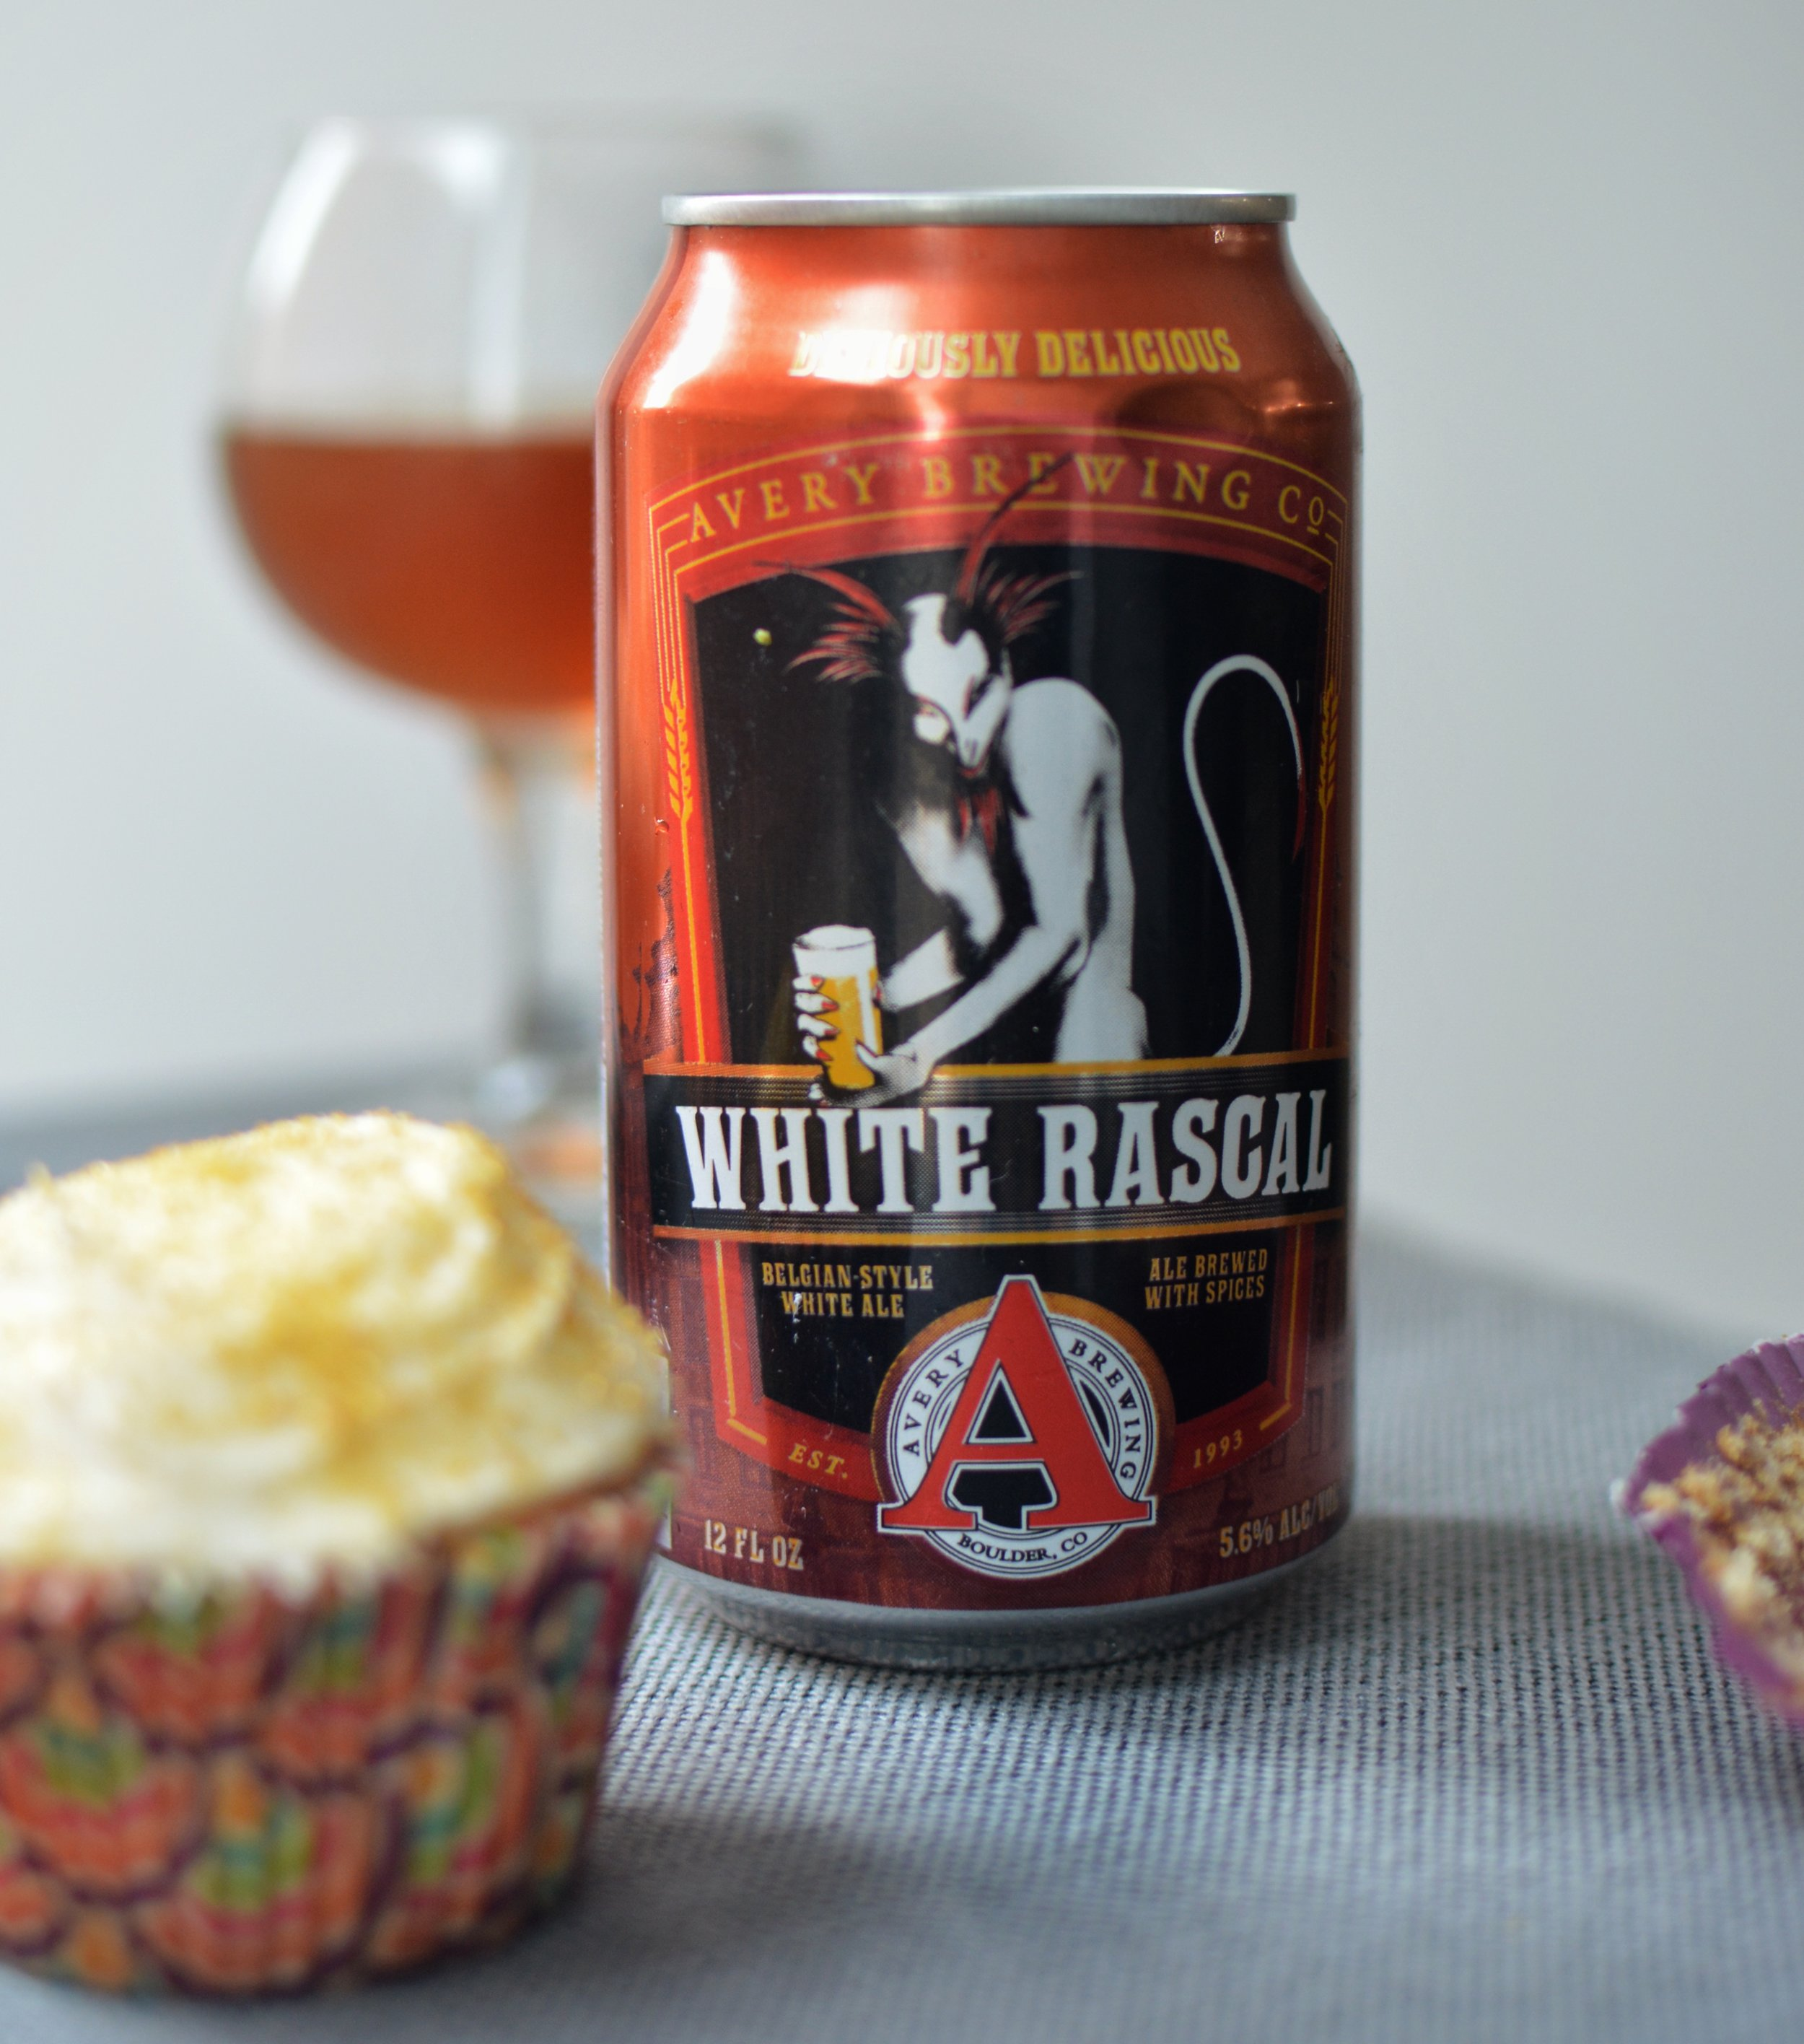 Avery White Rascal is the perfect pair for these vanilla cupcakes!